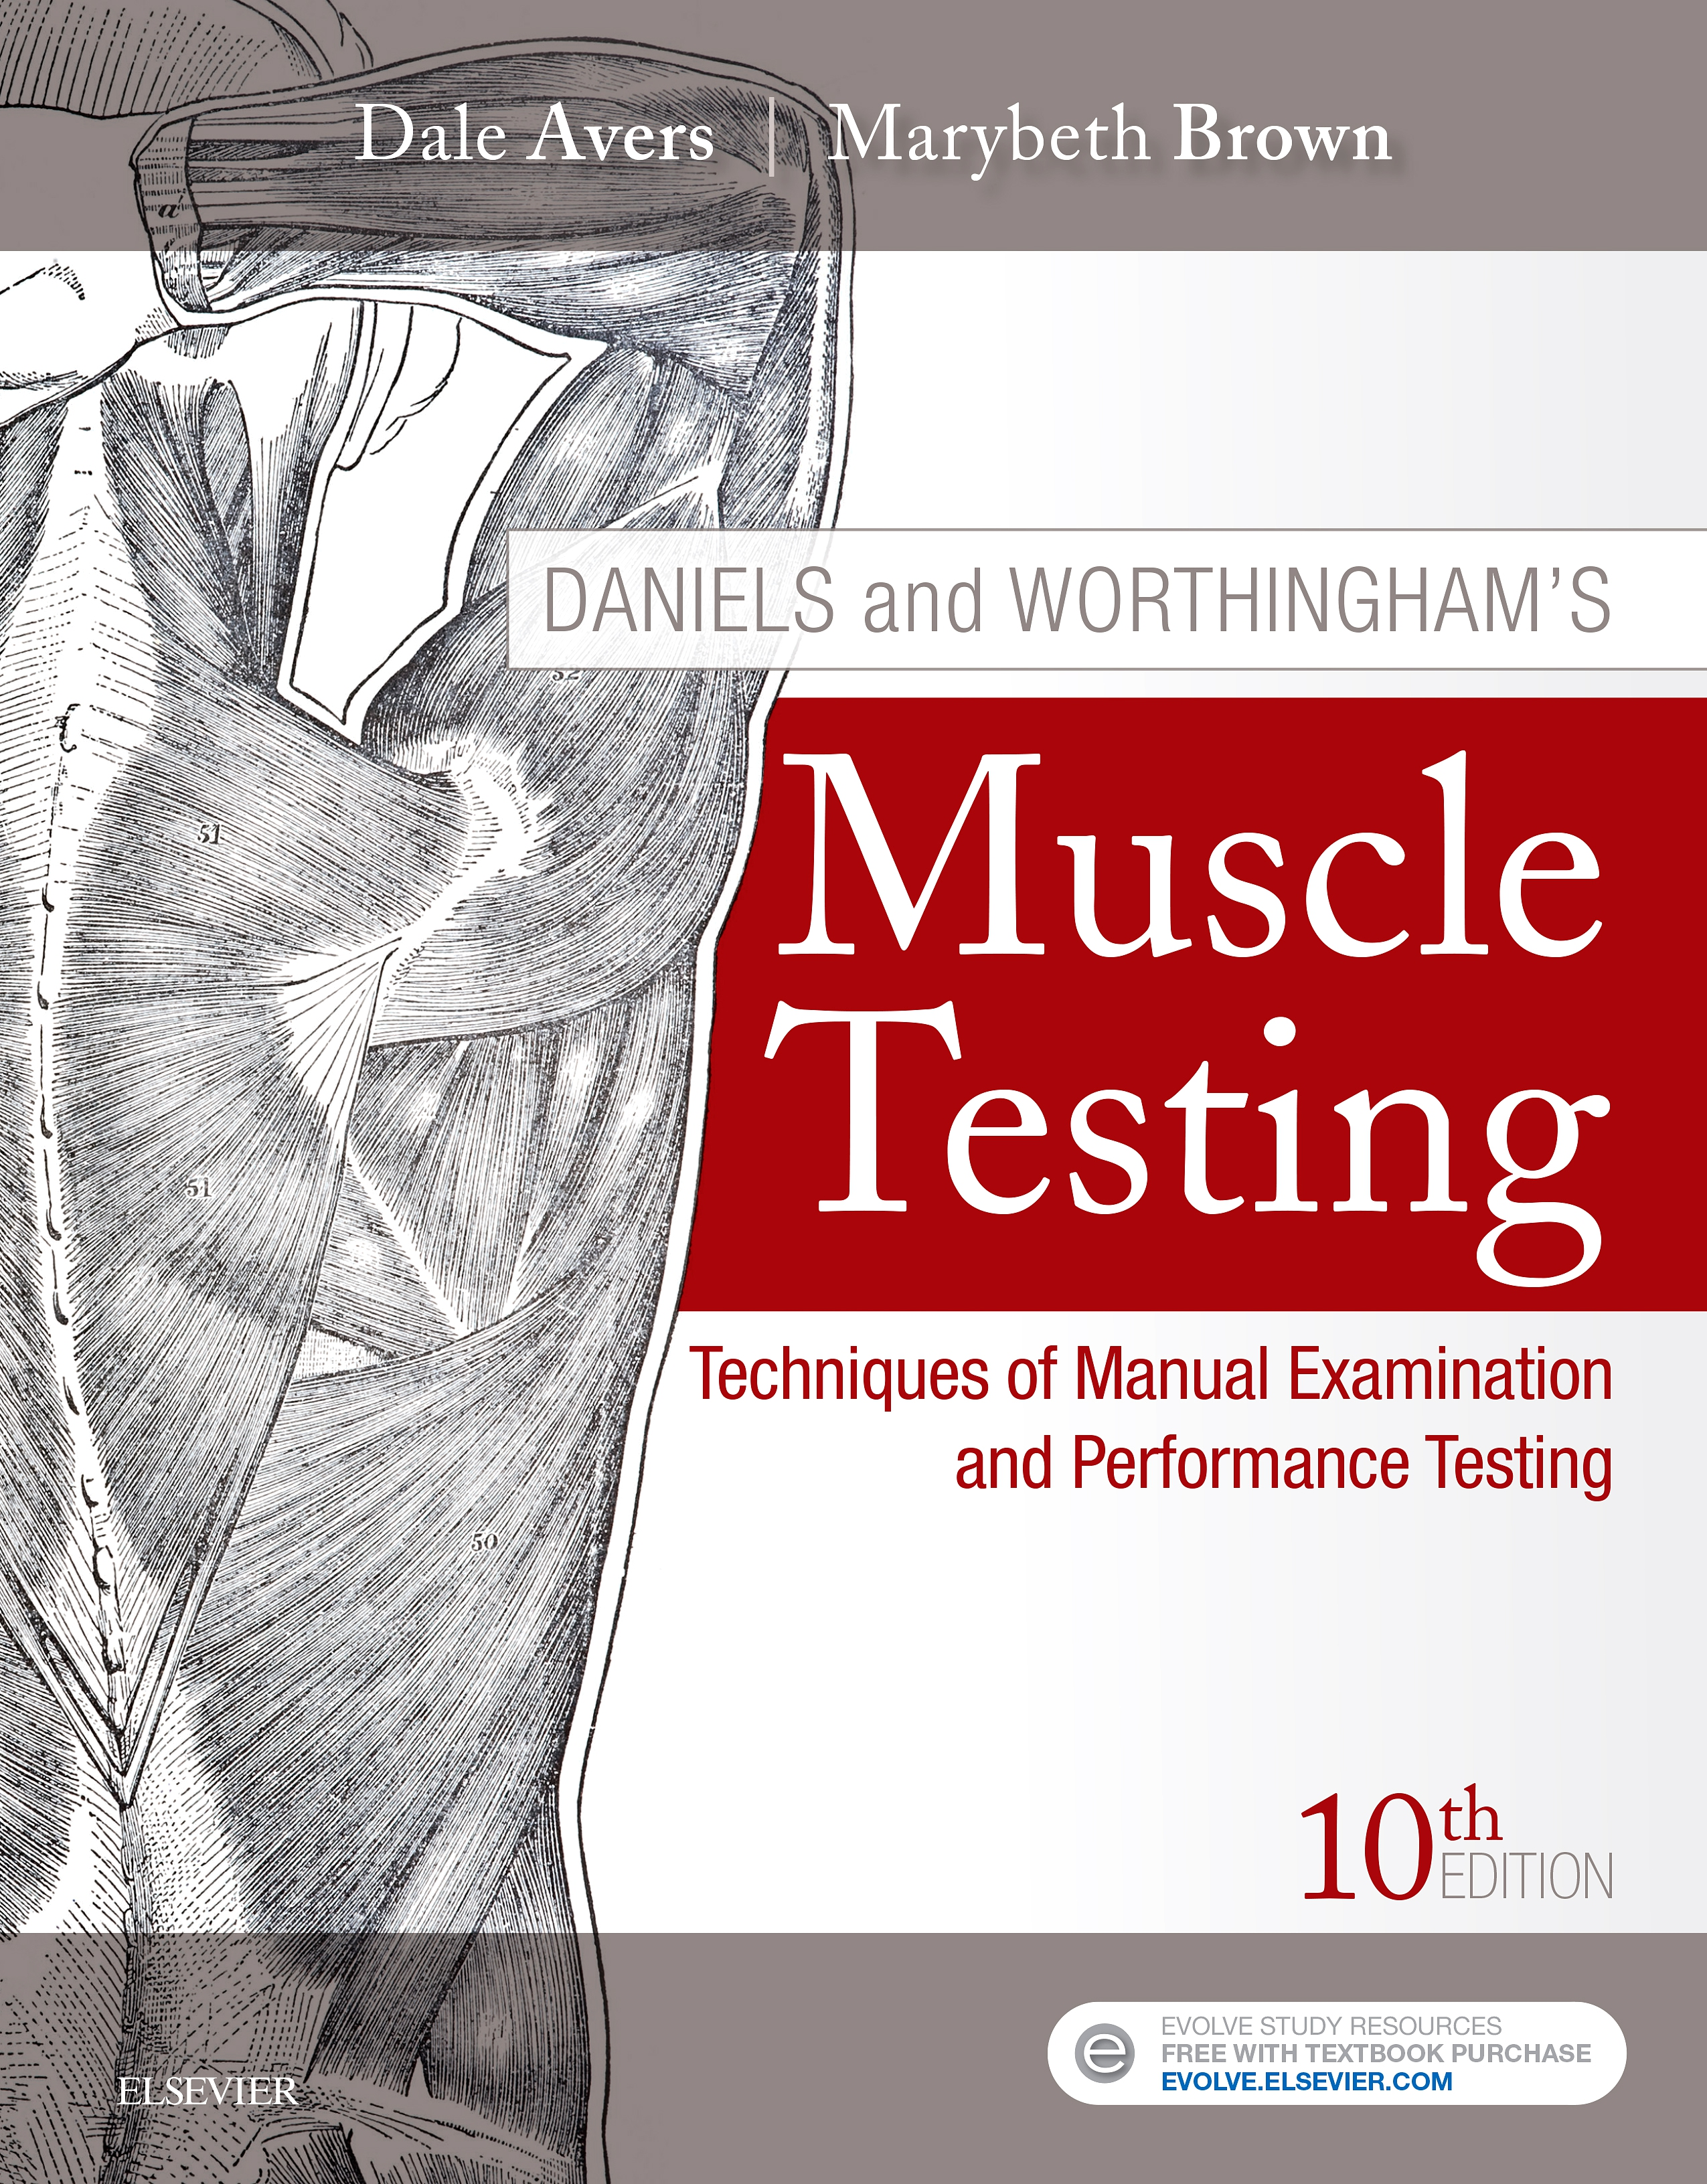 Evolve Resources for Daniels and Worthingham's Muscle Testing, 10th Edition